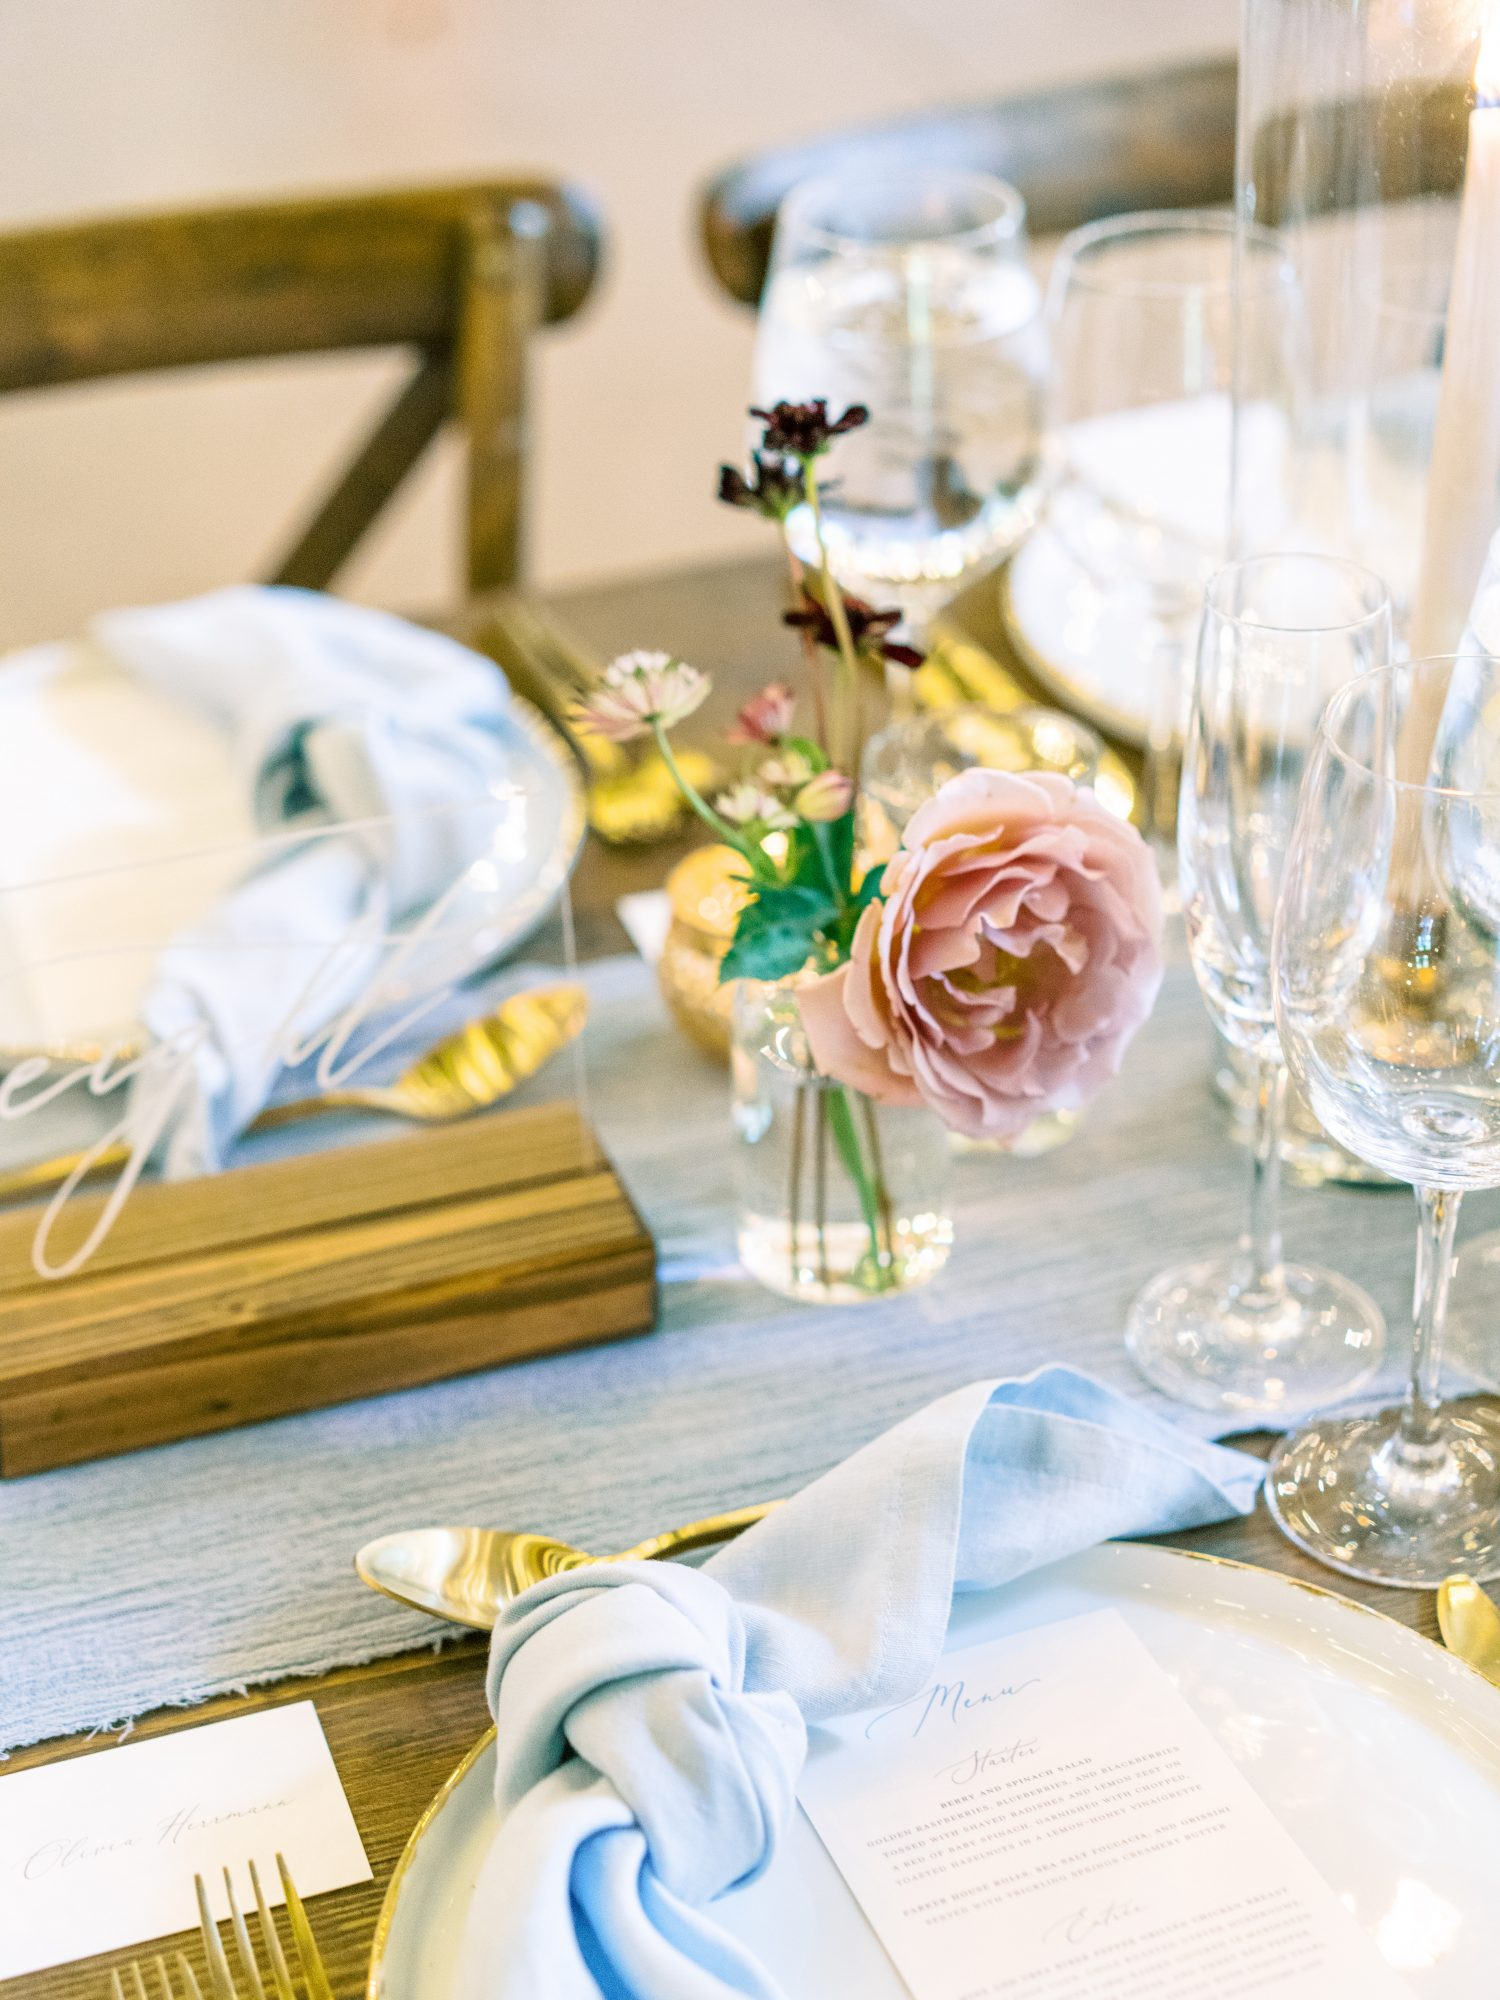 katelyn jose wedding place setting next to floral centerpiece